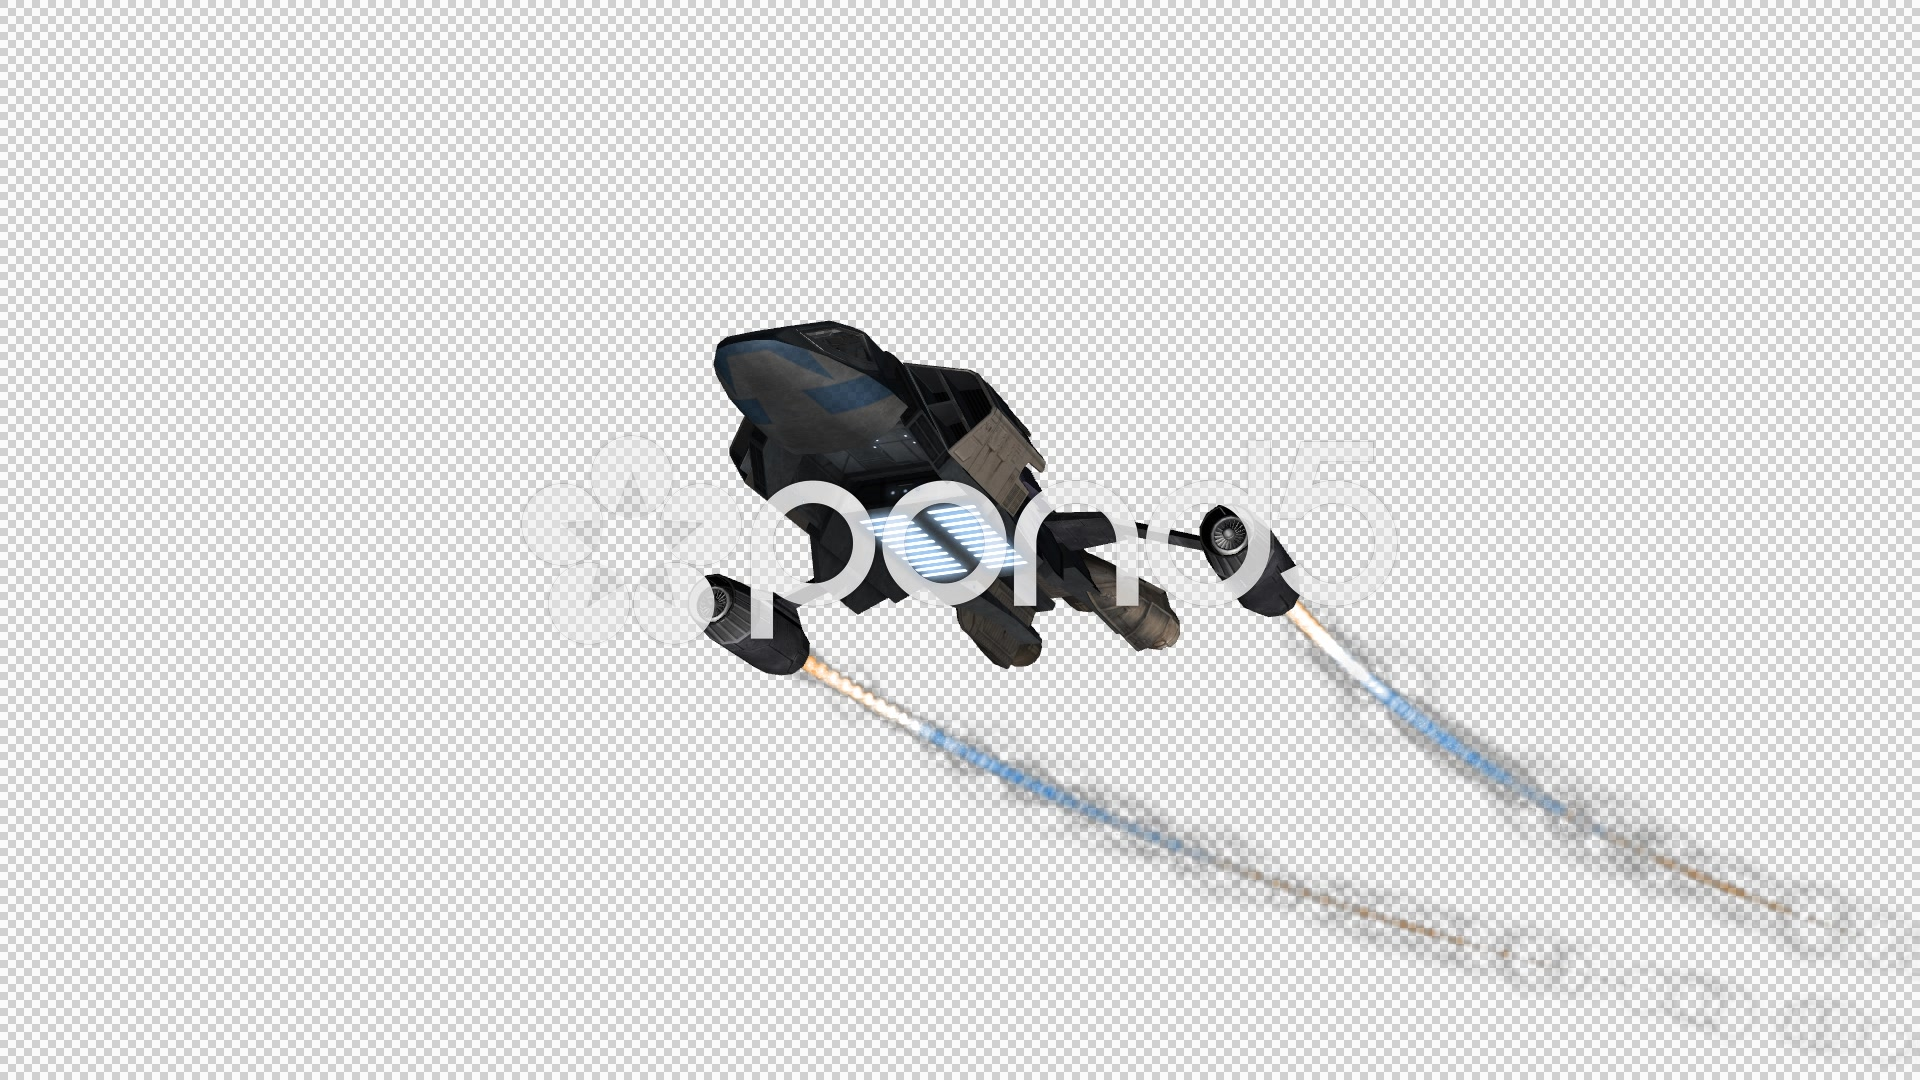 Spacefighter Spaceship flyby on transparent background